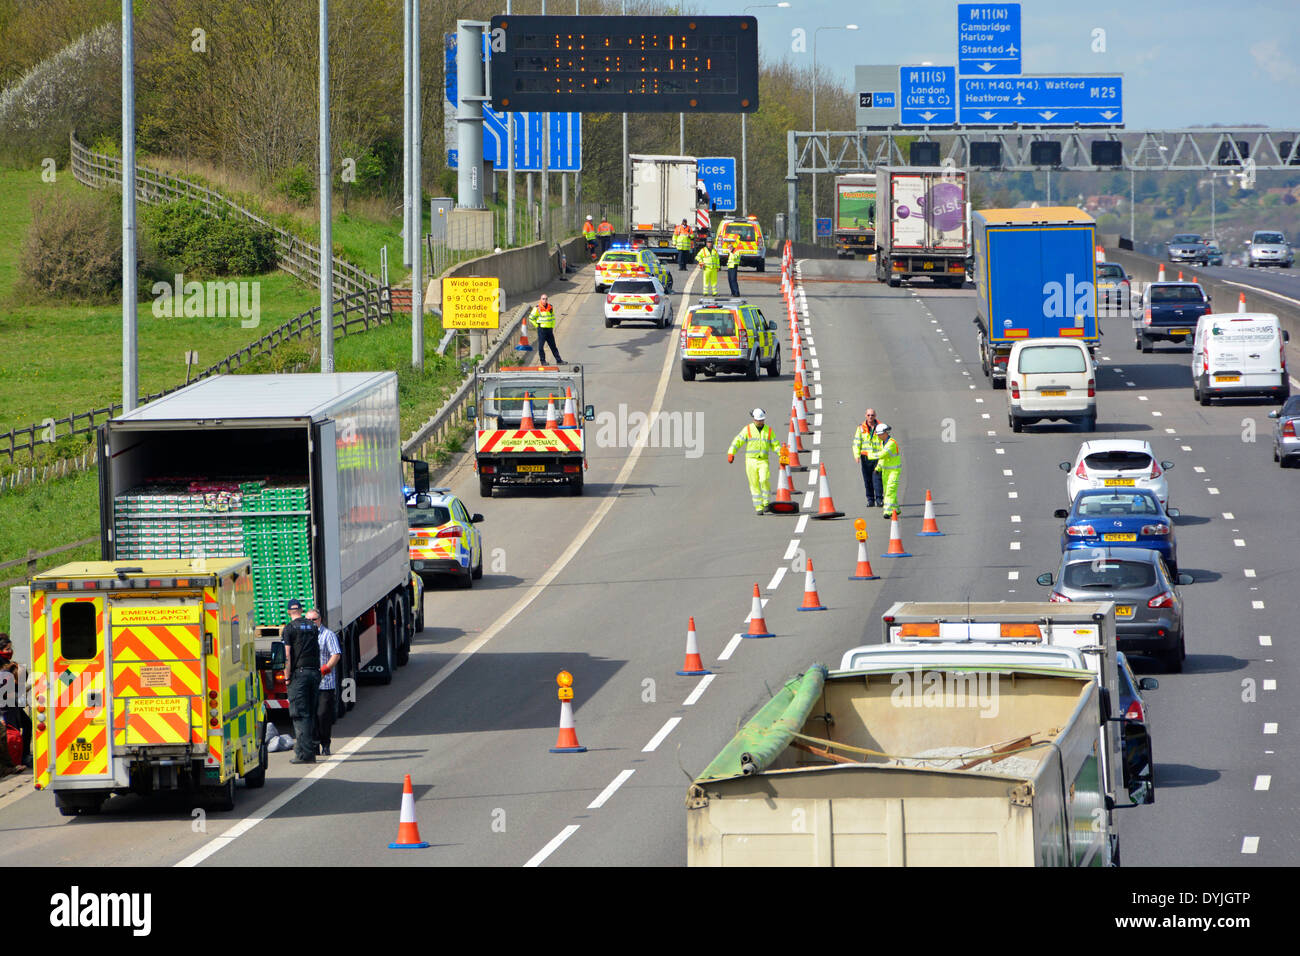 Reopening part of M25 motorway after accident (distant) and ongoing police lorry search incident (closest) on the hard shoulder - Stock Image